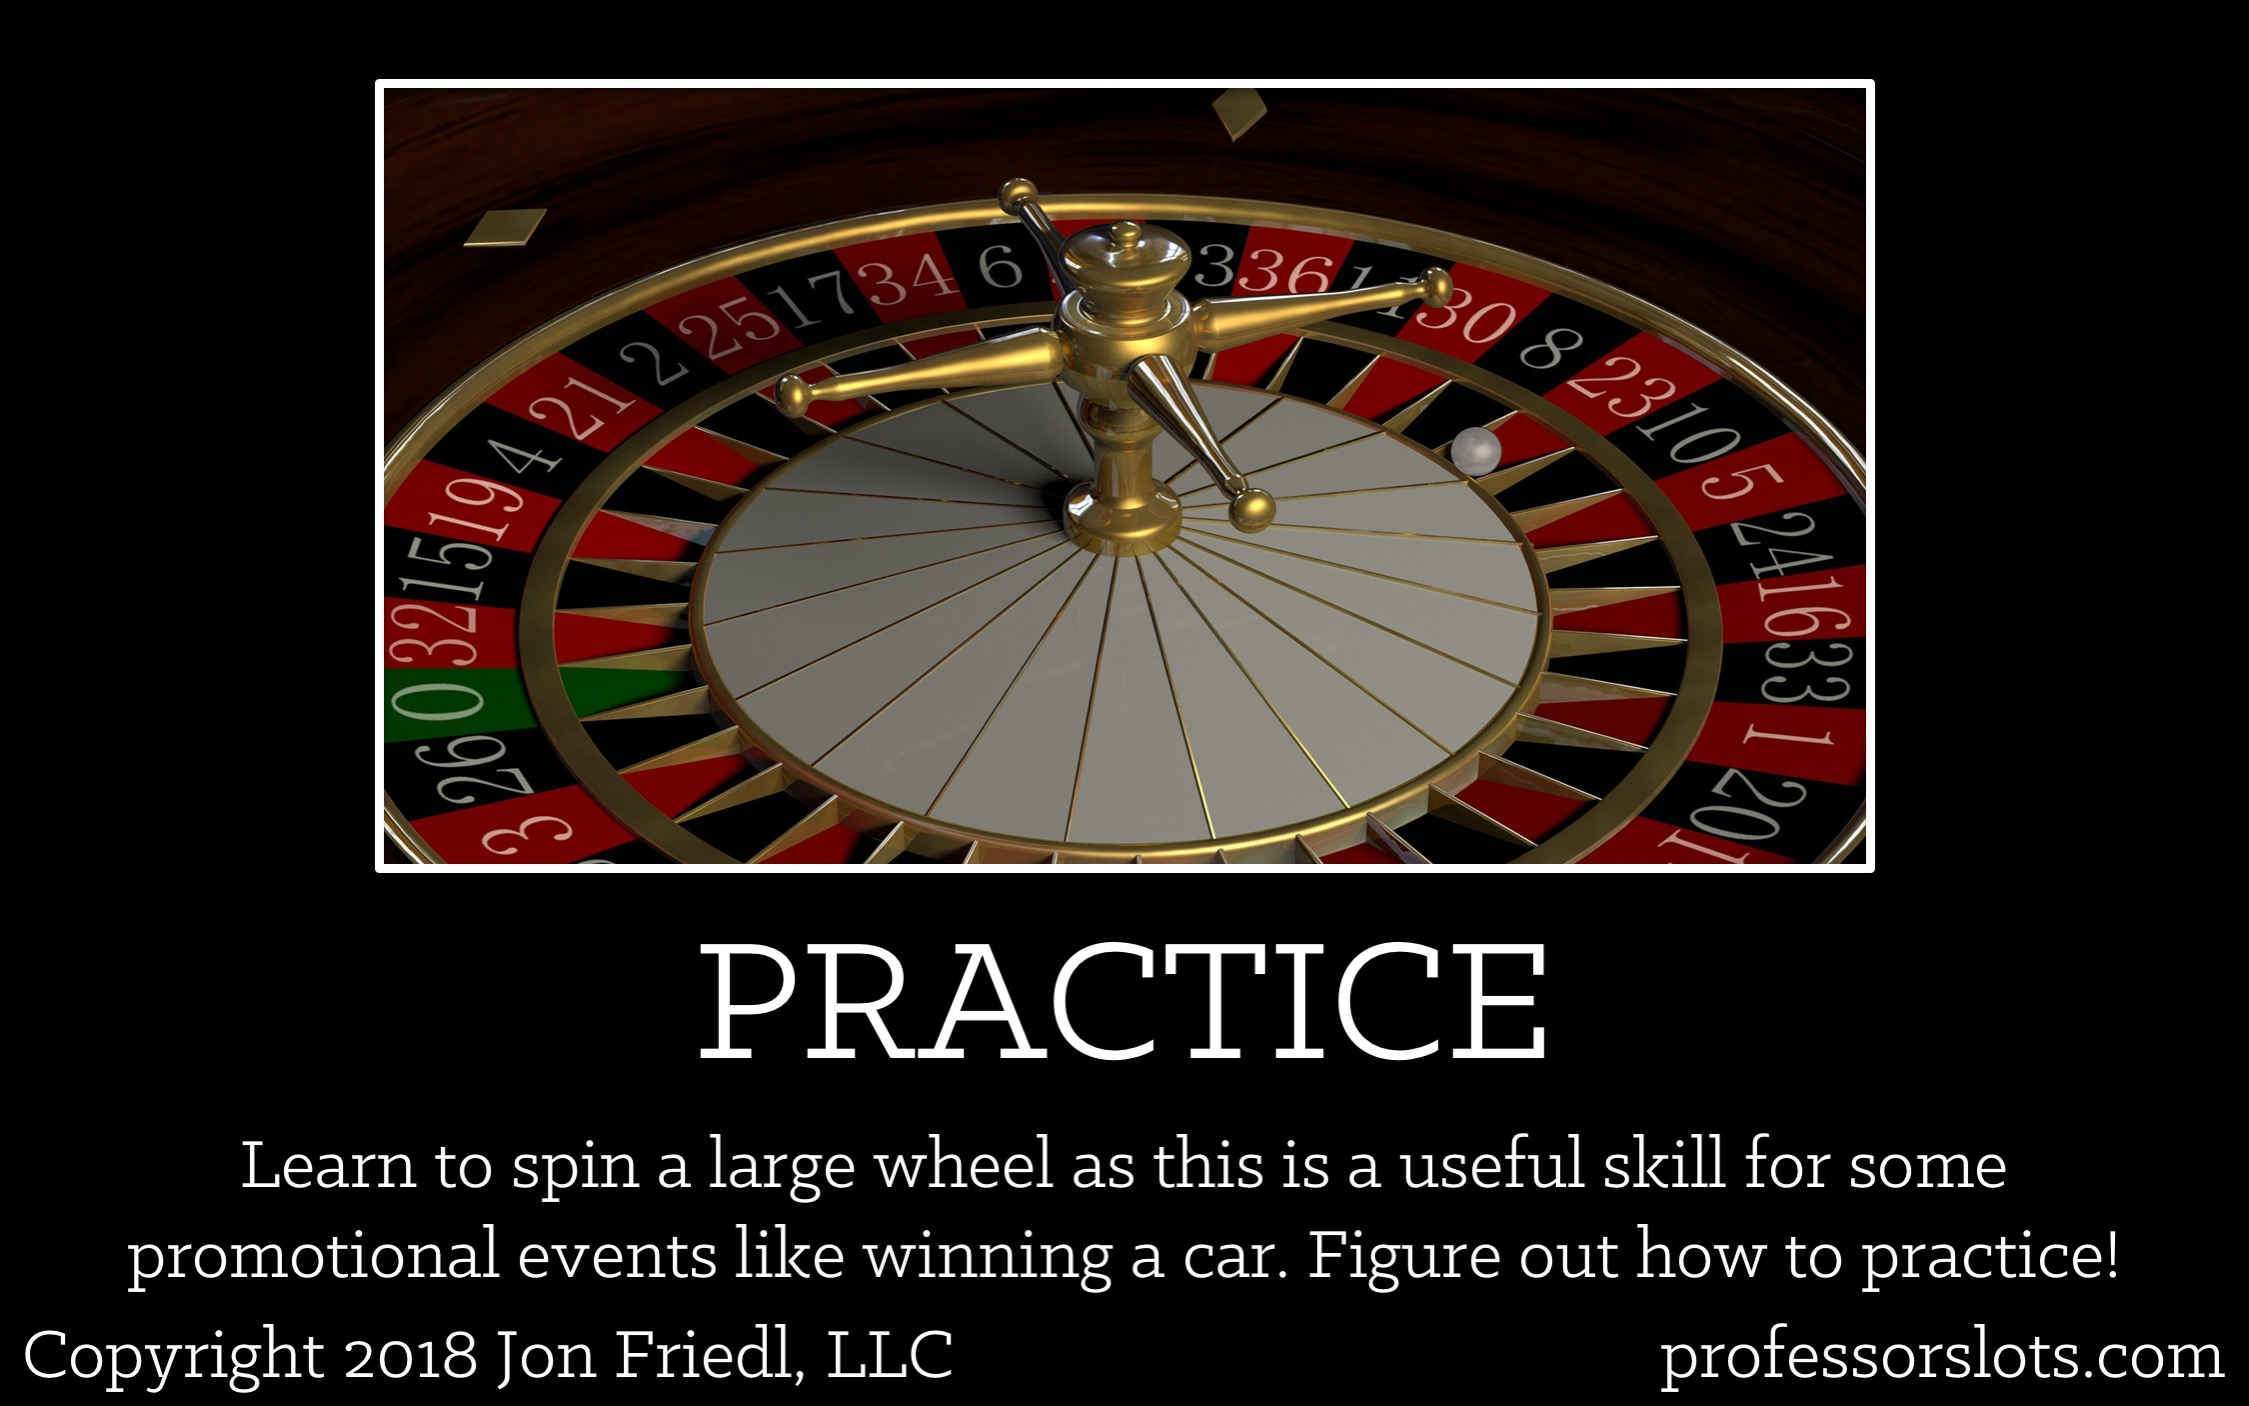 How I Won A Car: Learn to spin a large wheel as this is a useful skill for some promotional events like winning a car. Figure out how to practice!